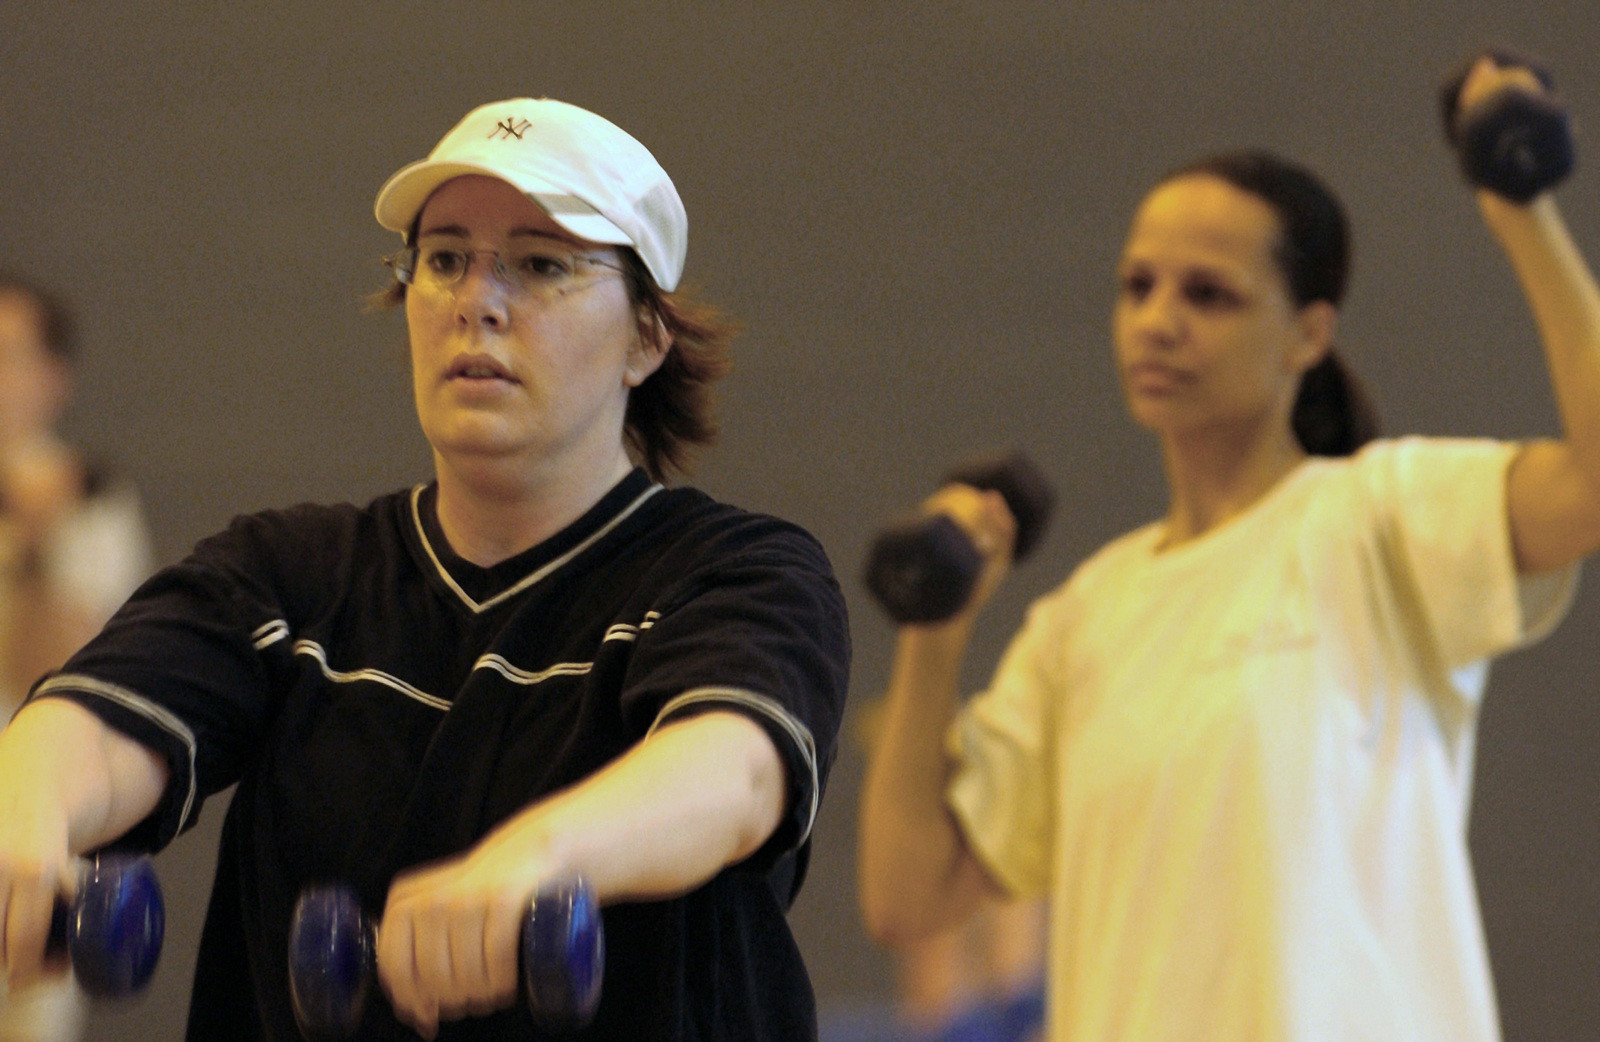 US Air Force (USAF) Technical Sergeant (TSGT) Erica Bairos (left) and TSGT Angie Harris, both assigned to 3rd Air Force (3AF), participate in a Combat Fitness Circuit Training Class held at the Royal Air Force (RAF) Mildenhall base fitness center, in England (ENG)